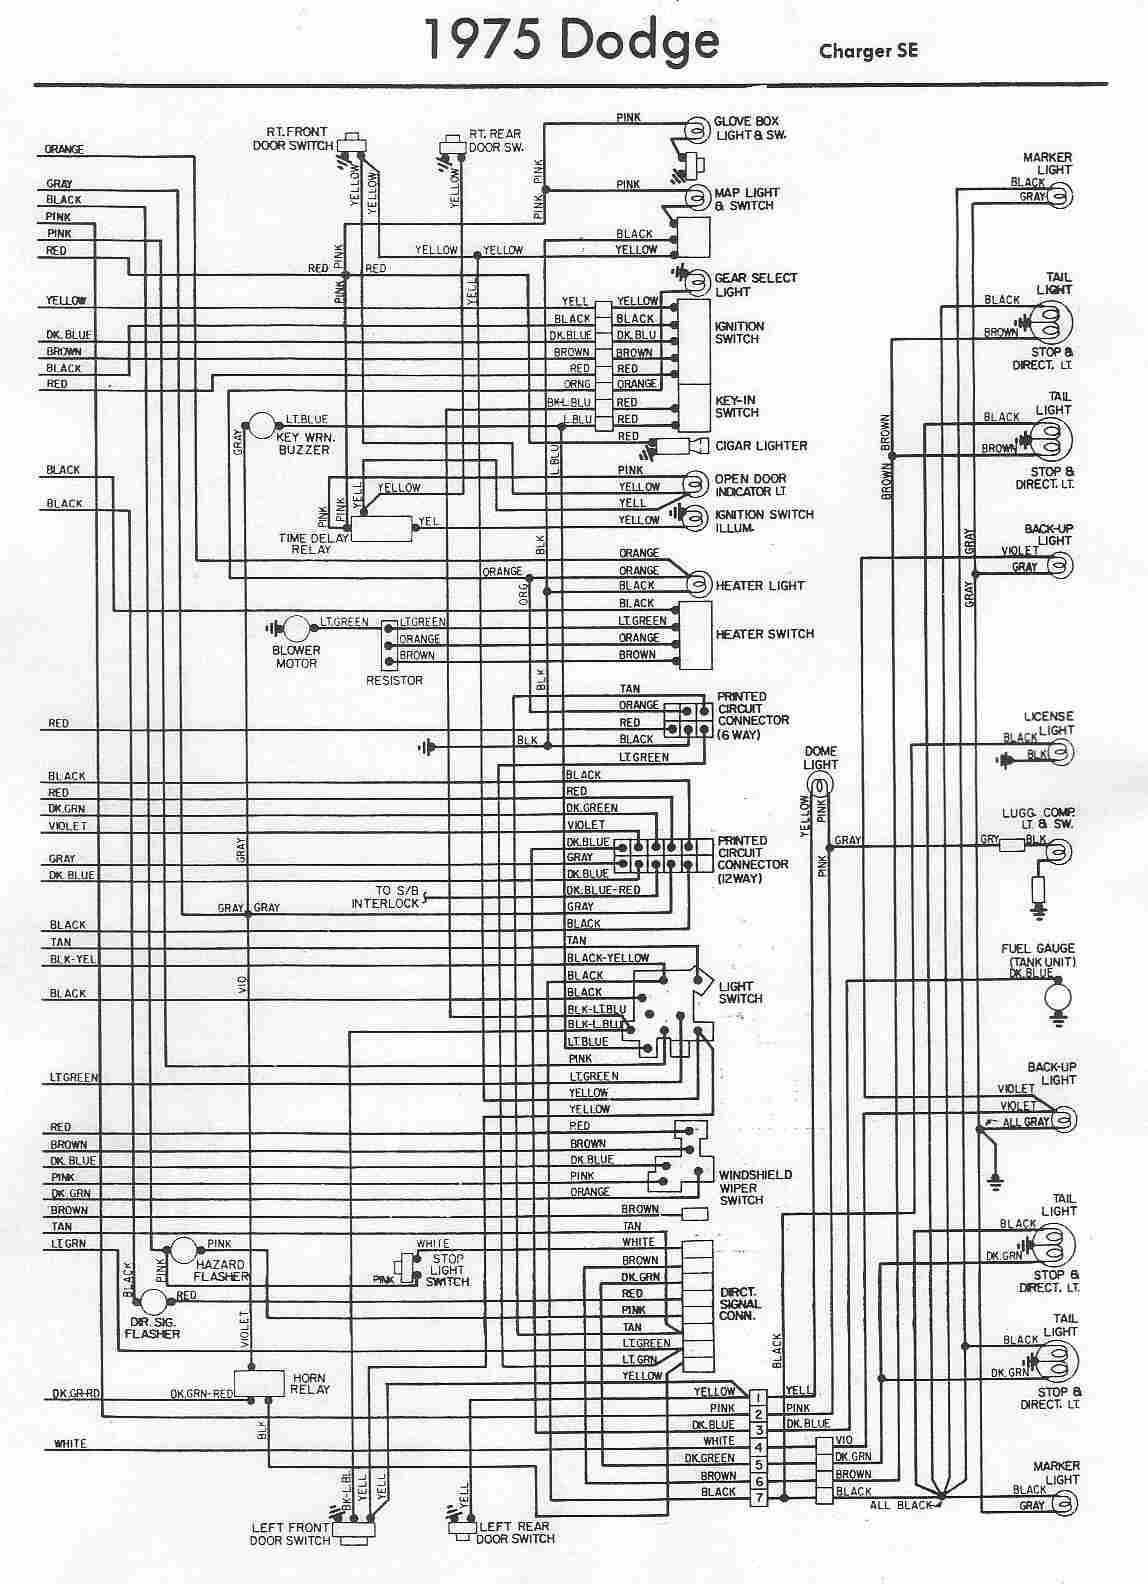 Dodge Car Manuals Wiring Diagrams Pdf Fault Codes Create Block Free Download Diagram Schematic